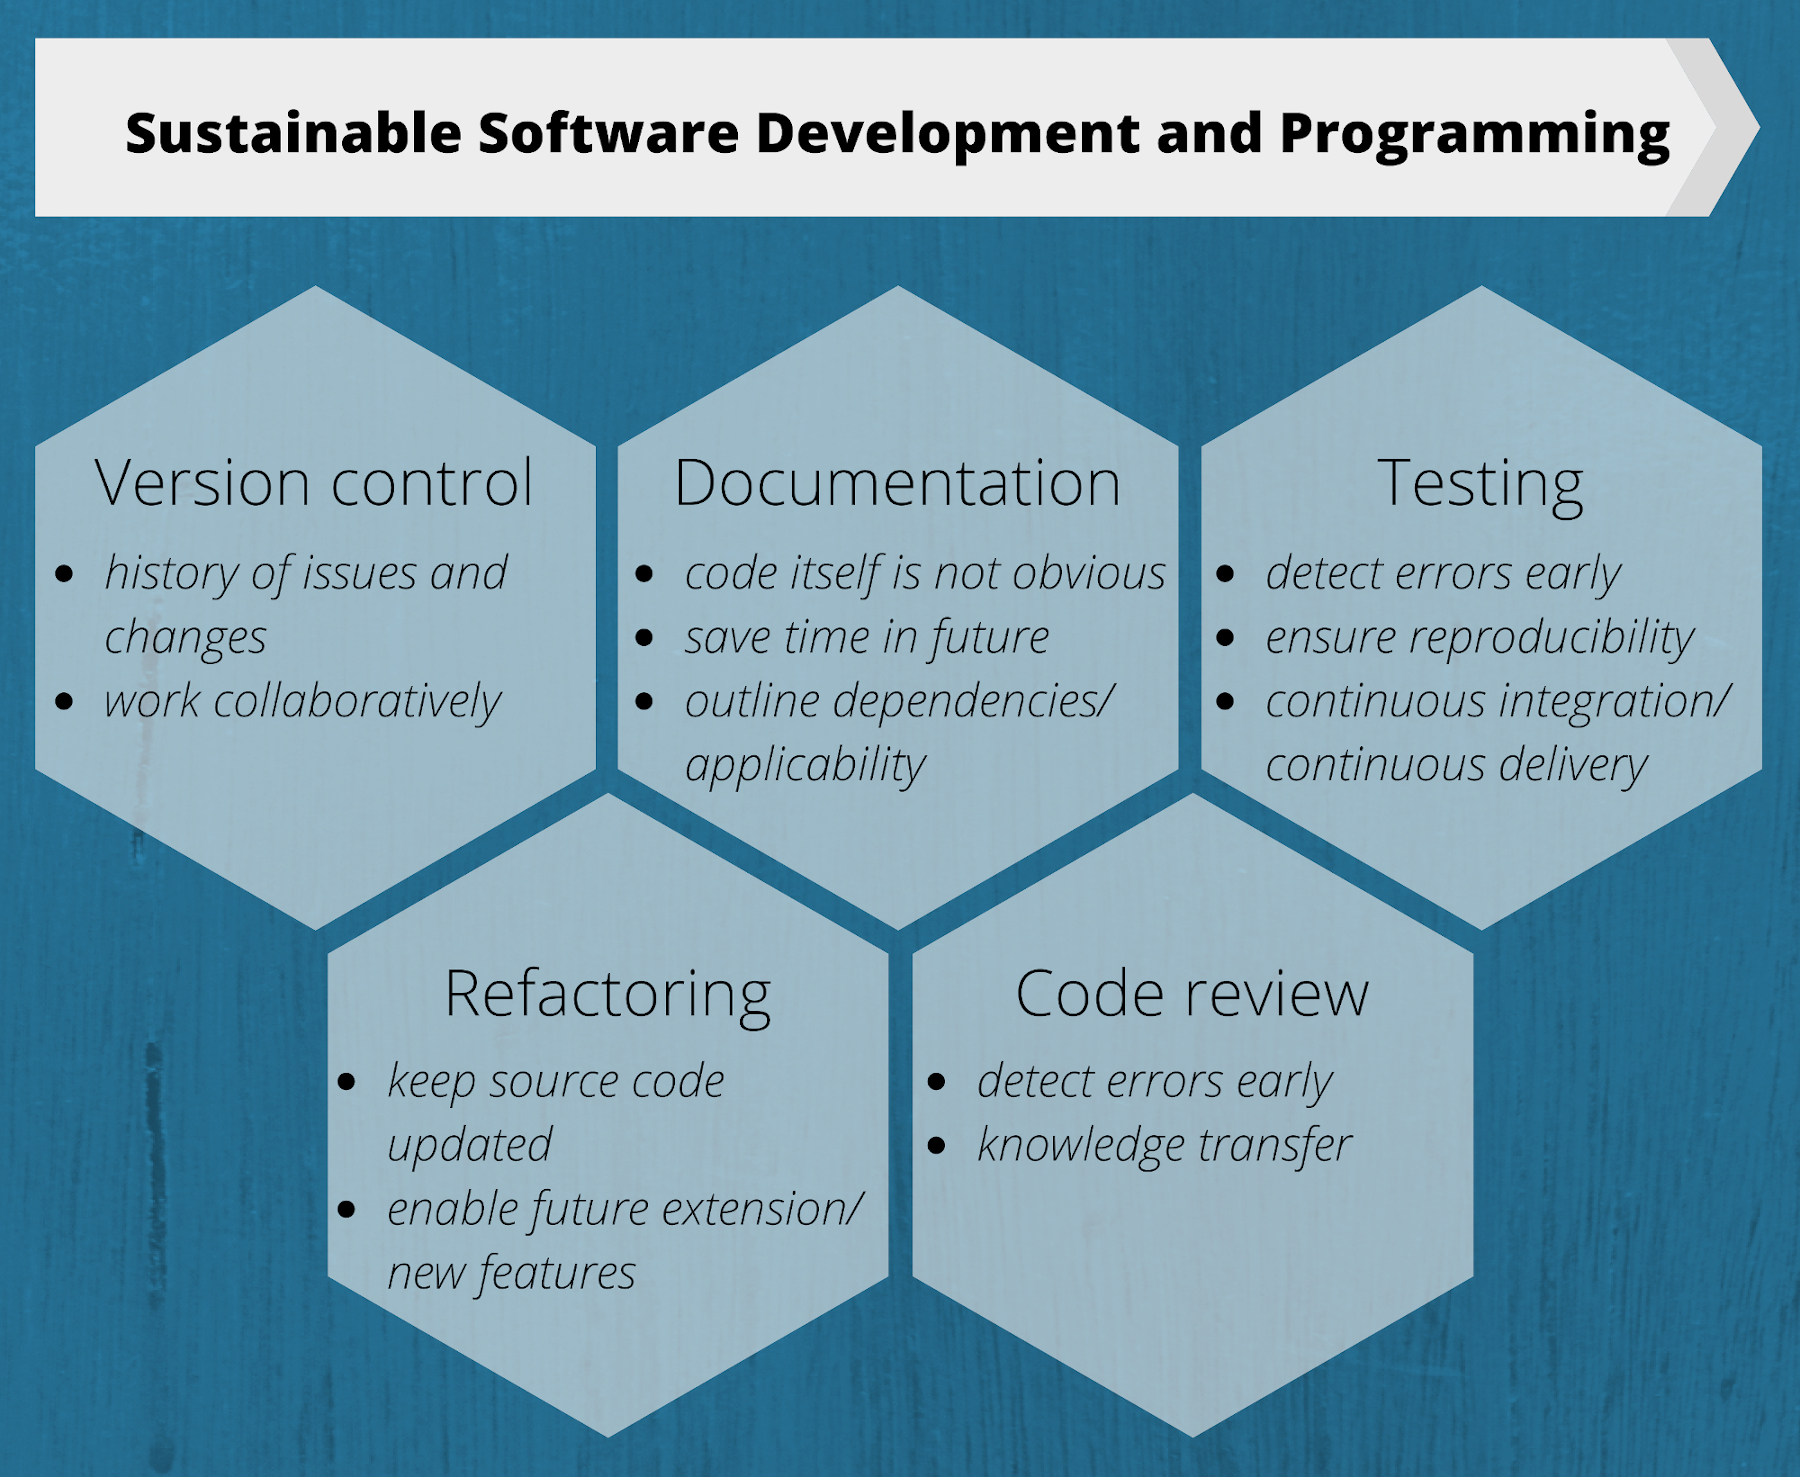 The basic ingredients to sustainable software development.